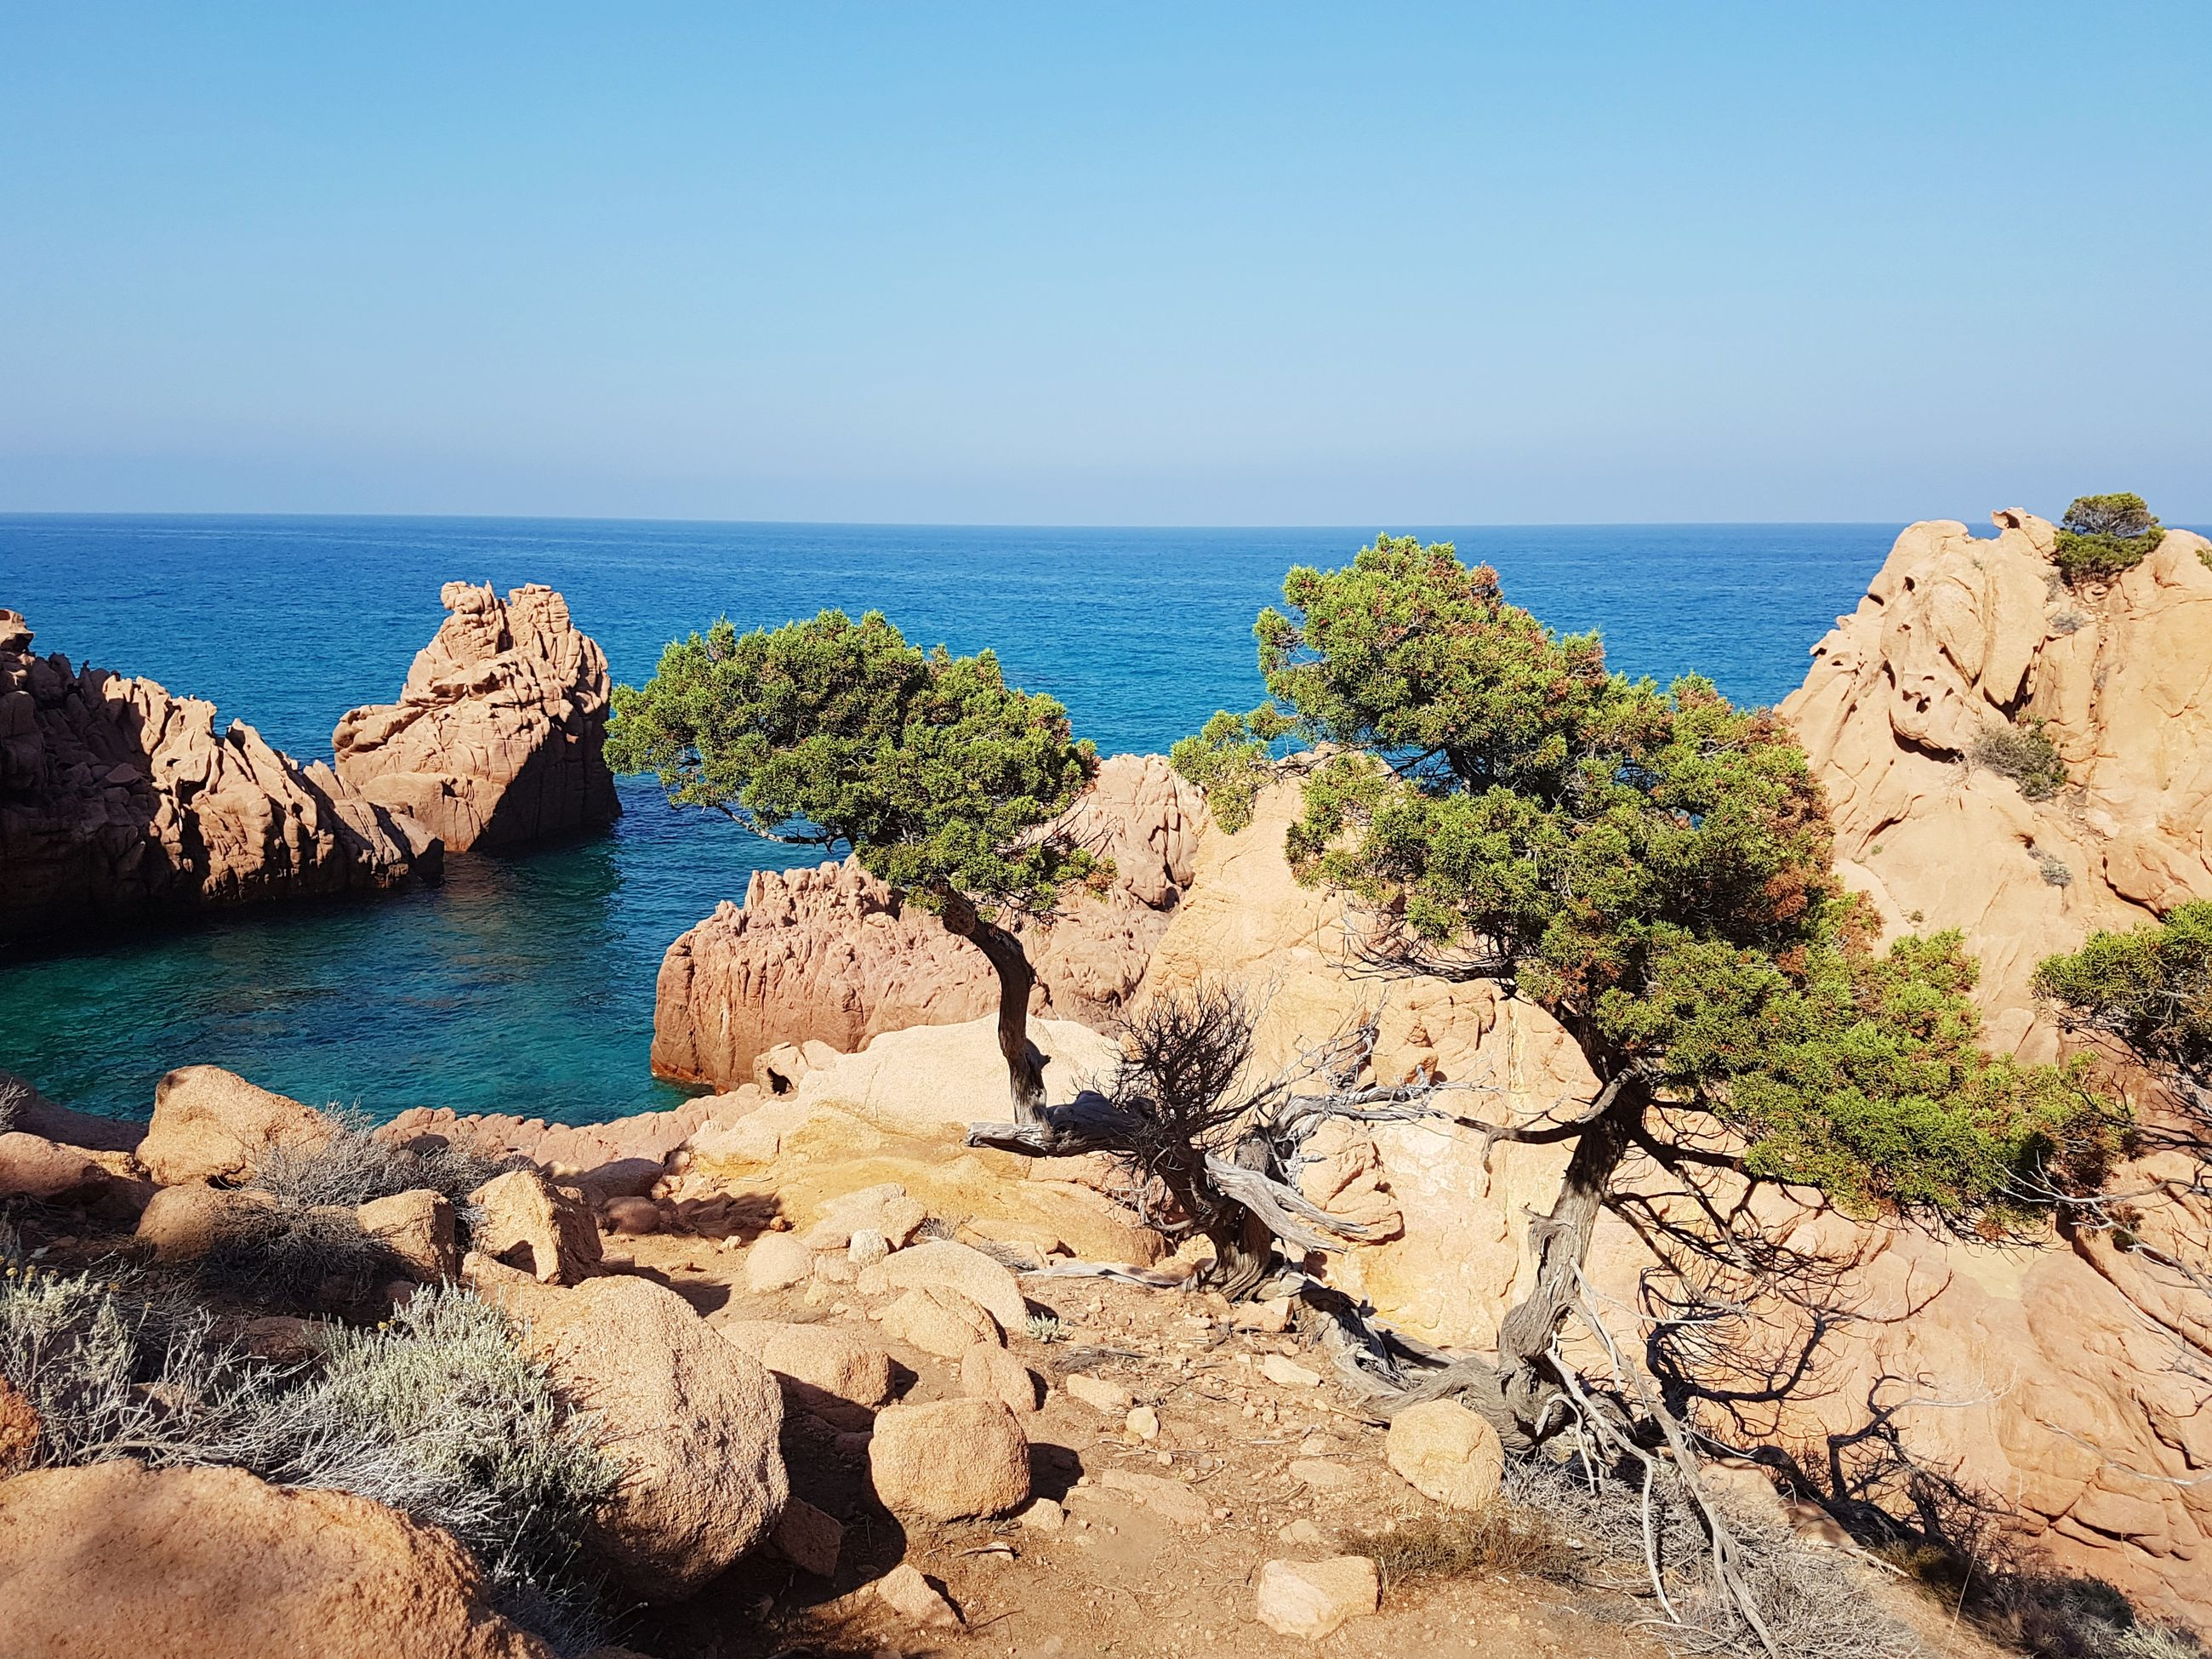 sea, horizon over water, scenics, water, rock - object, nature, tranquility, beauty in nature, rock formation, tranquil scene, clear sky, day, outdoors, no people, sunlight, blue, sky, sand, plant, cliff, beach